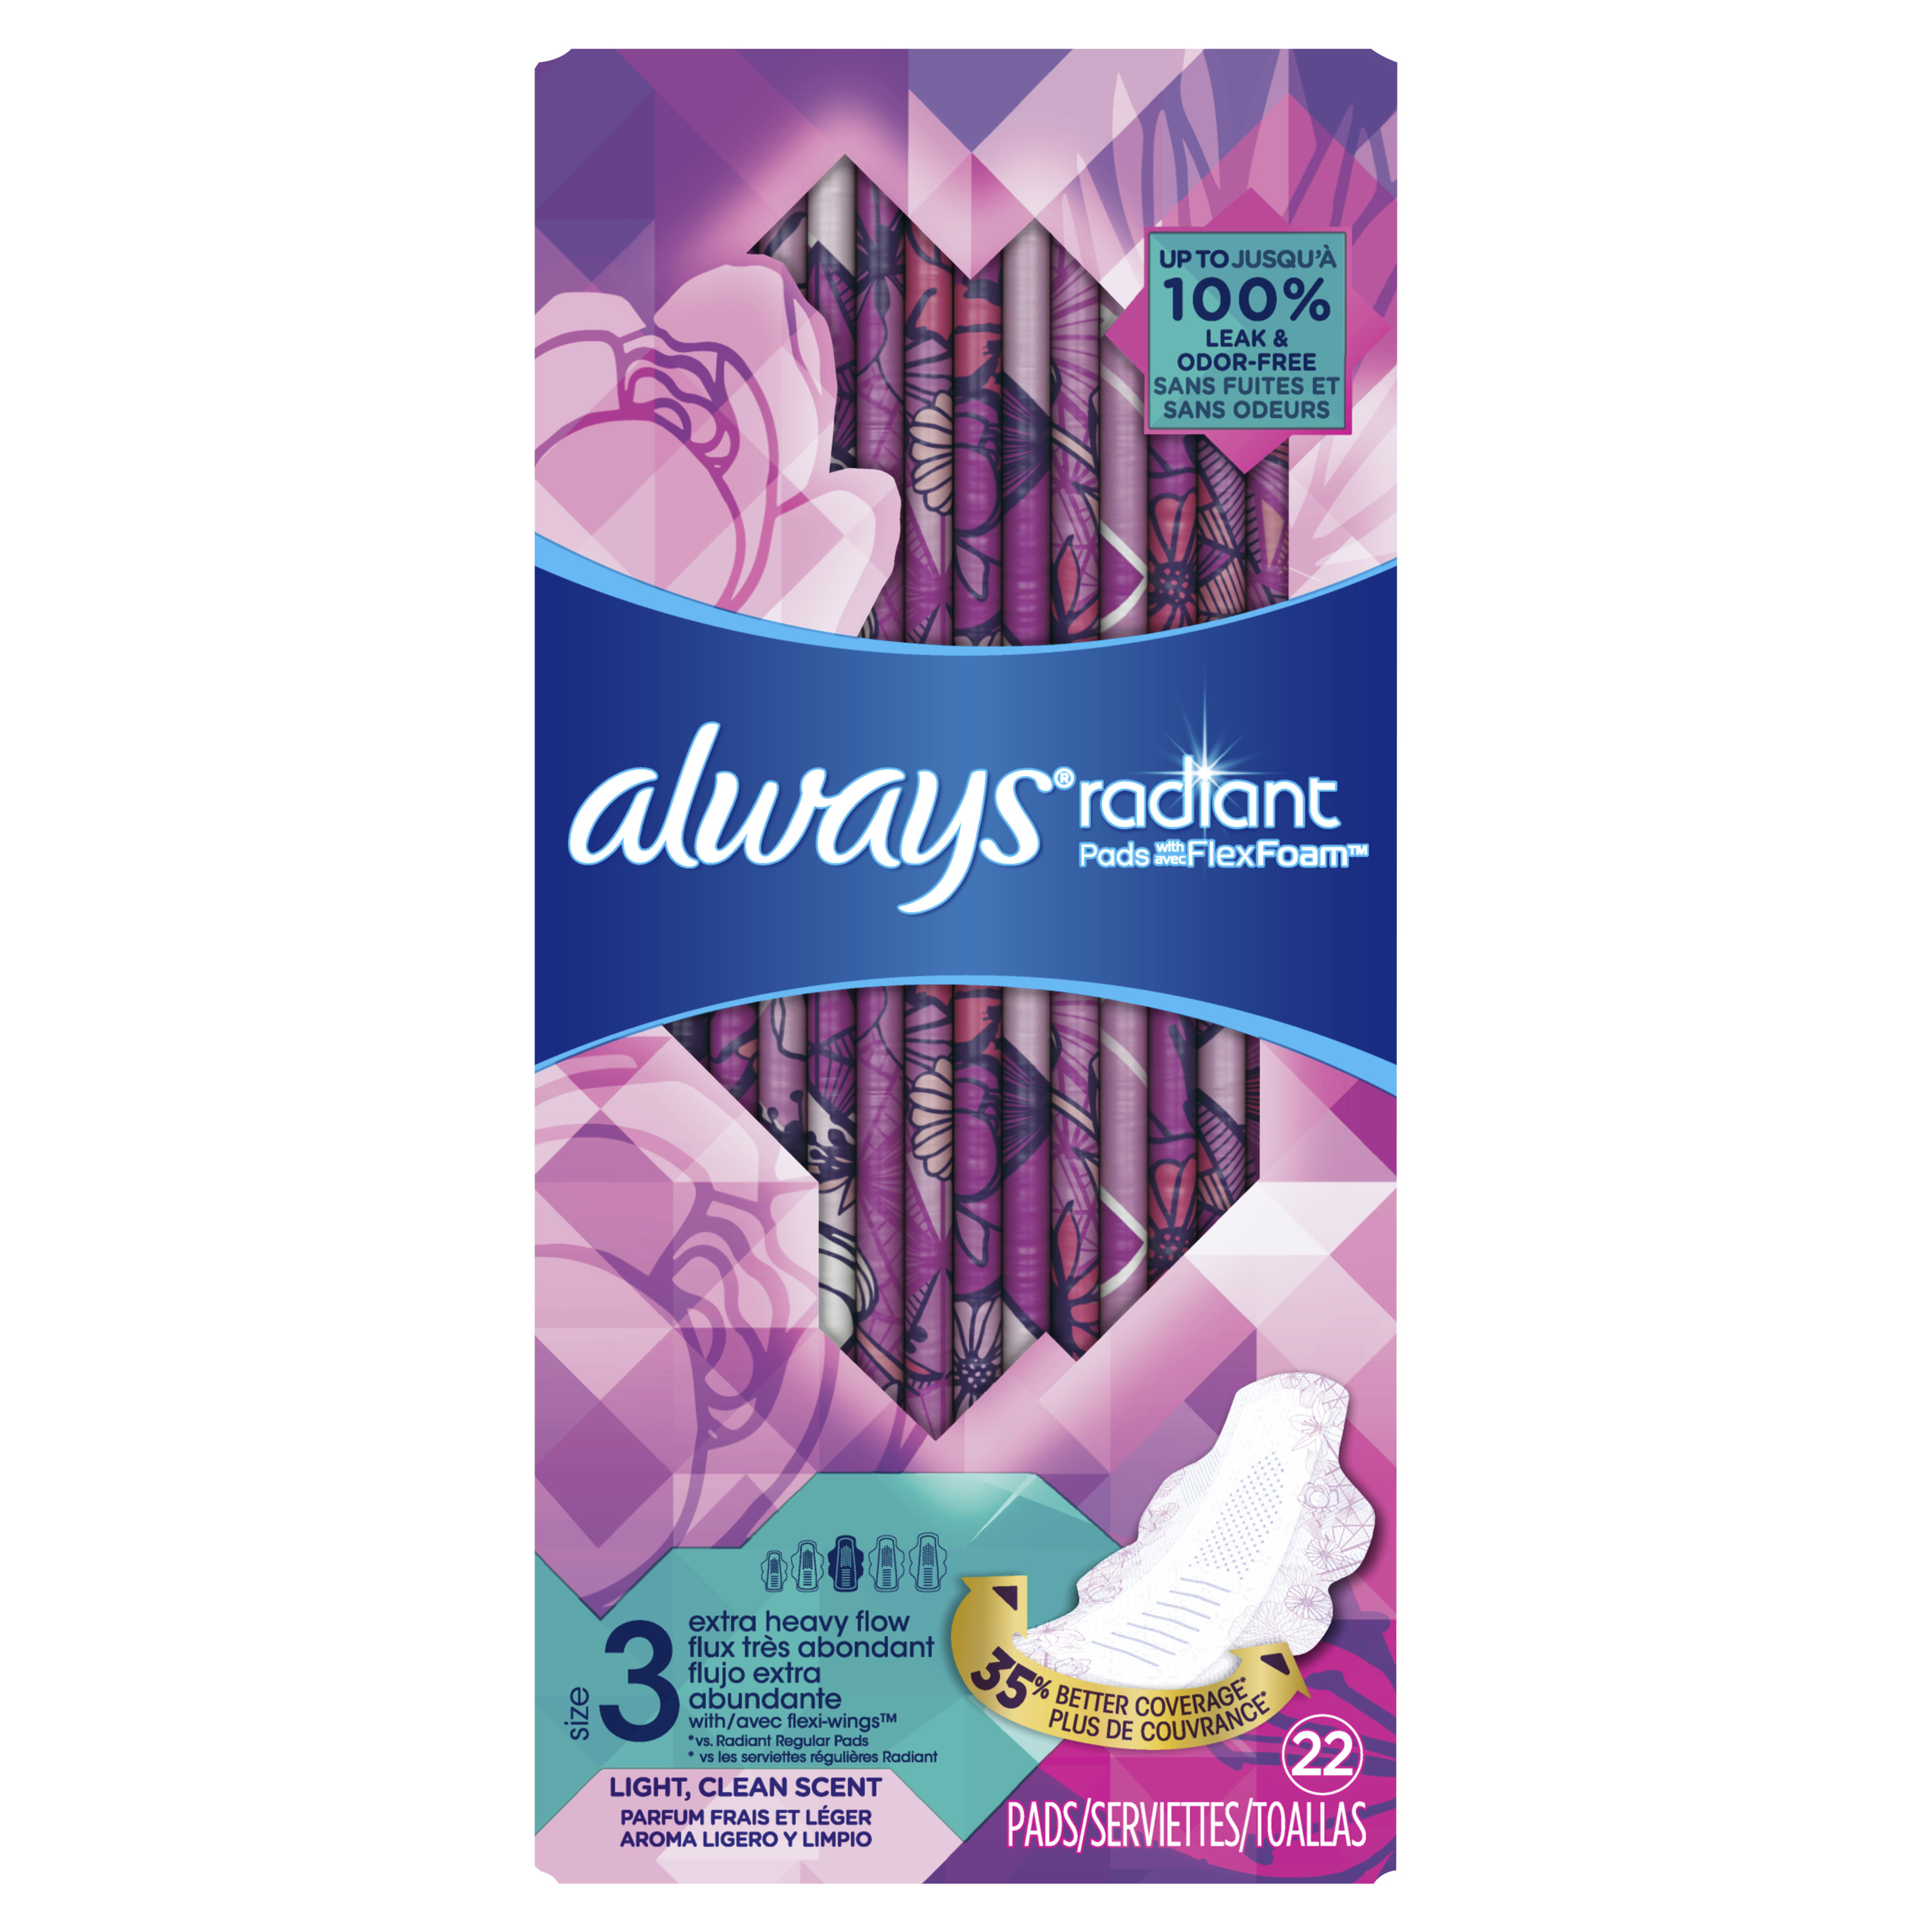 Always Radiant Pads, Size 3, Light Clean Scent, Extra Heavy Flow, 22 Count